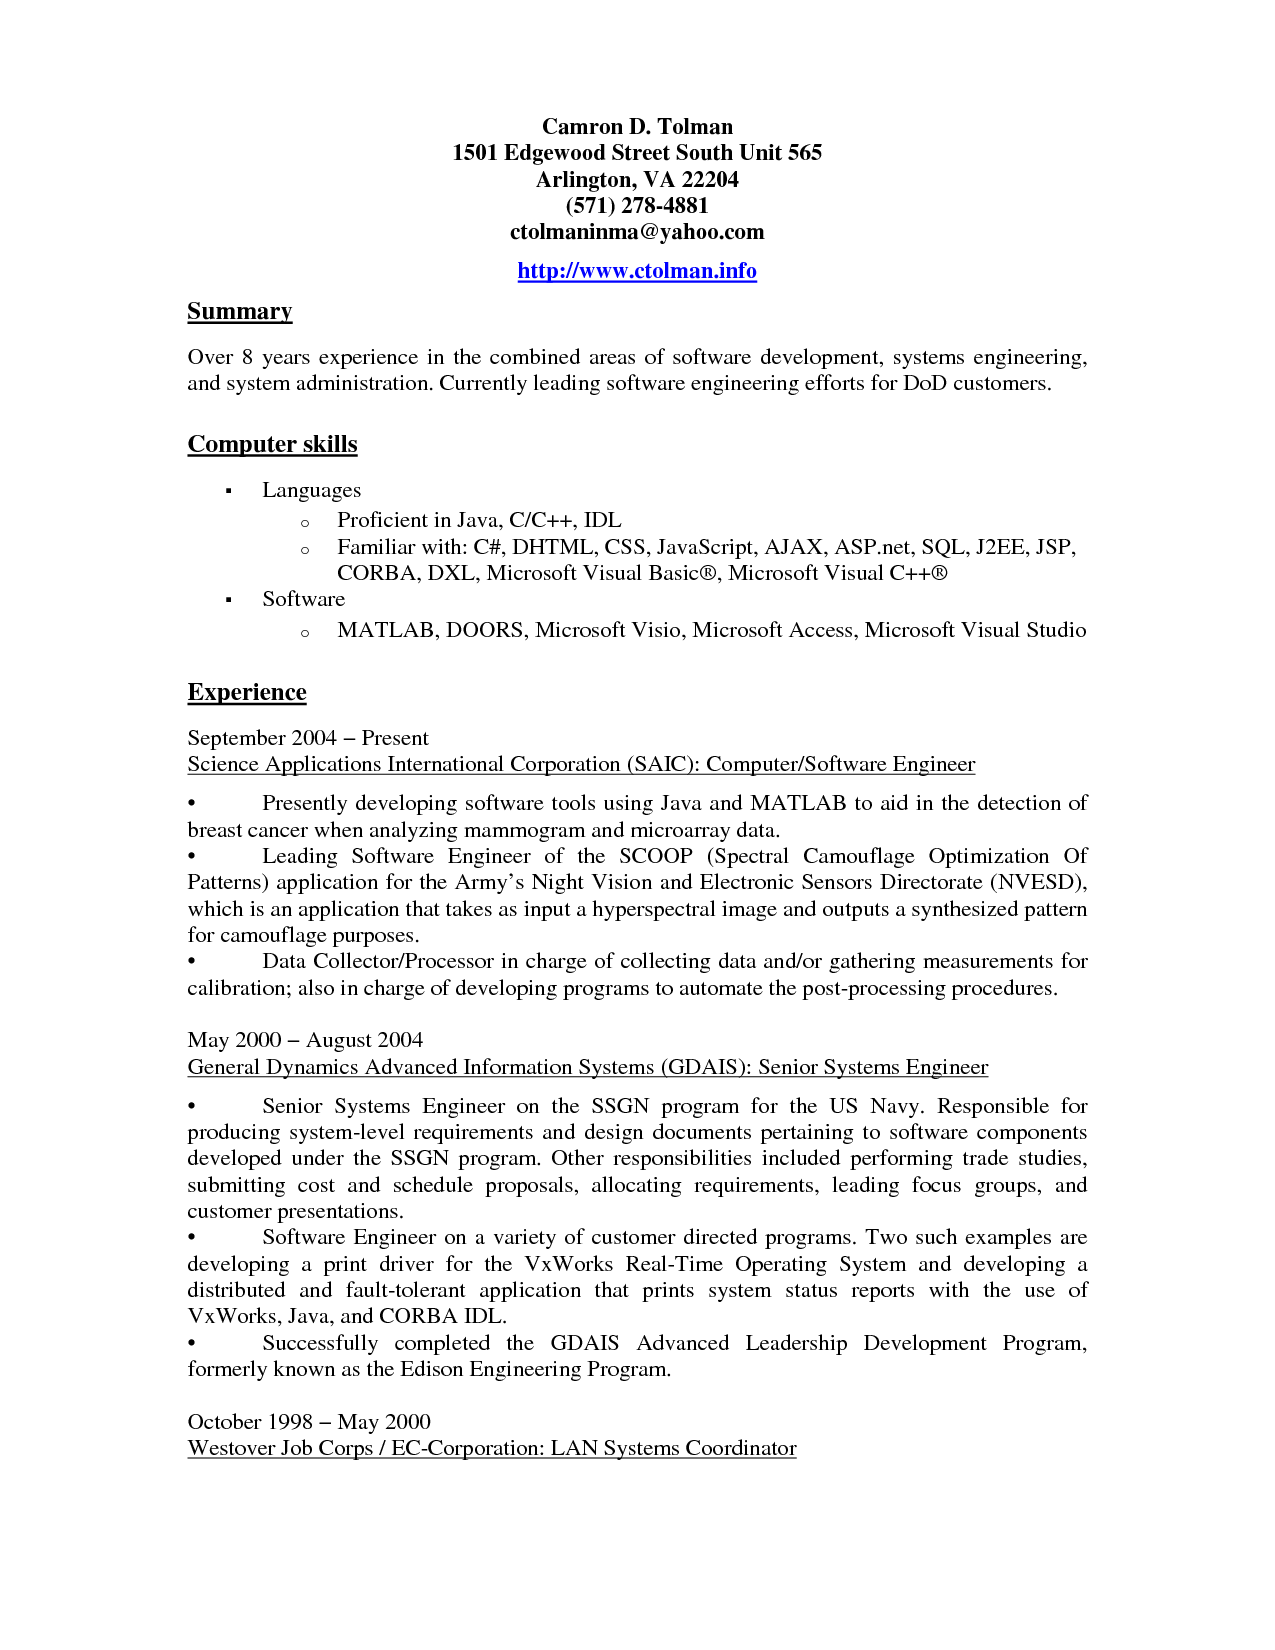 Technical Skills For Resume Resume Skills Summary Examples Example Of Skills Summary For